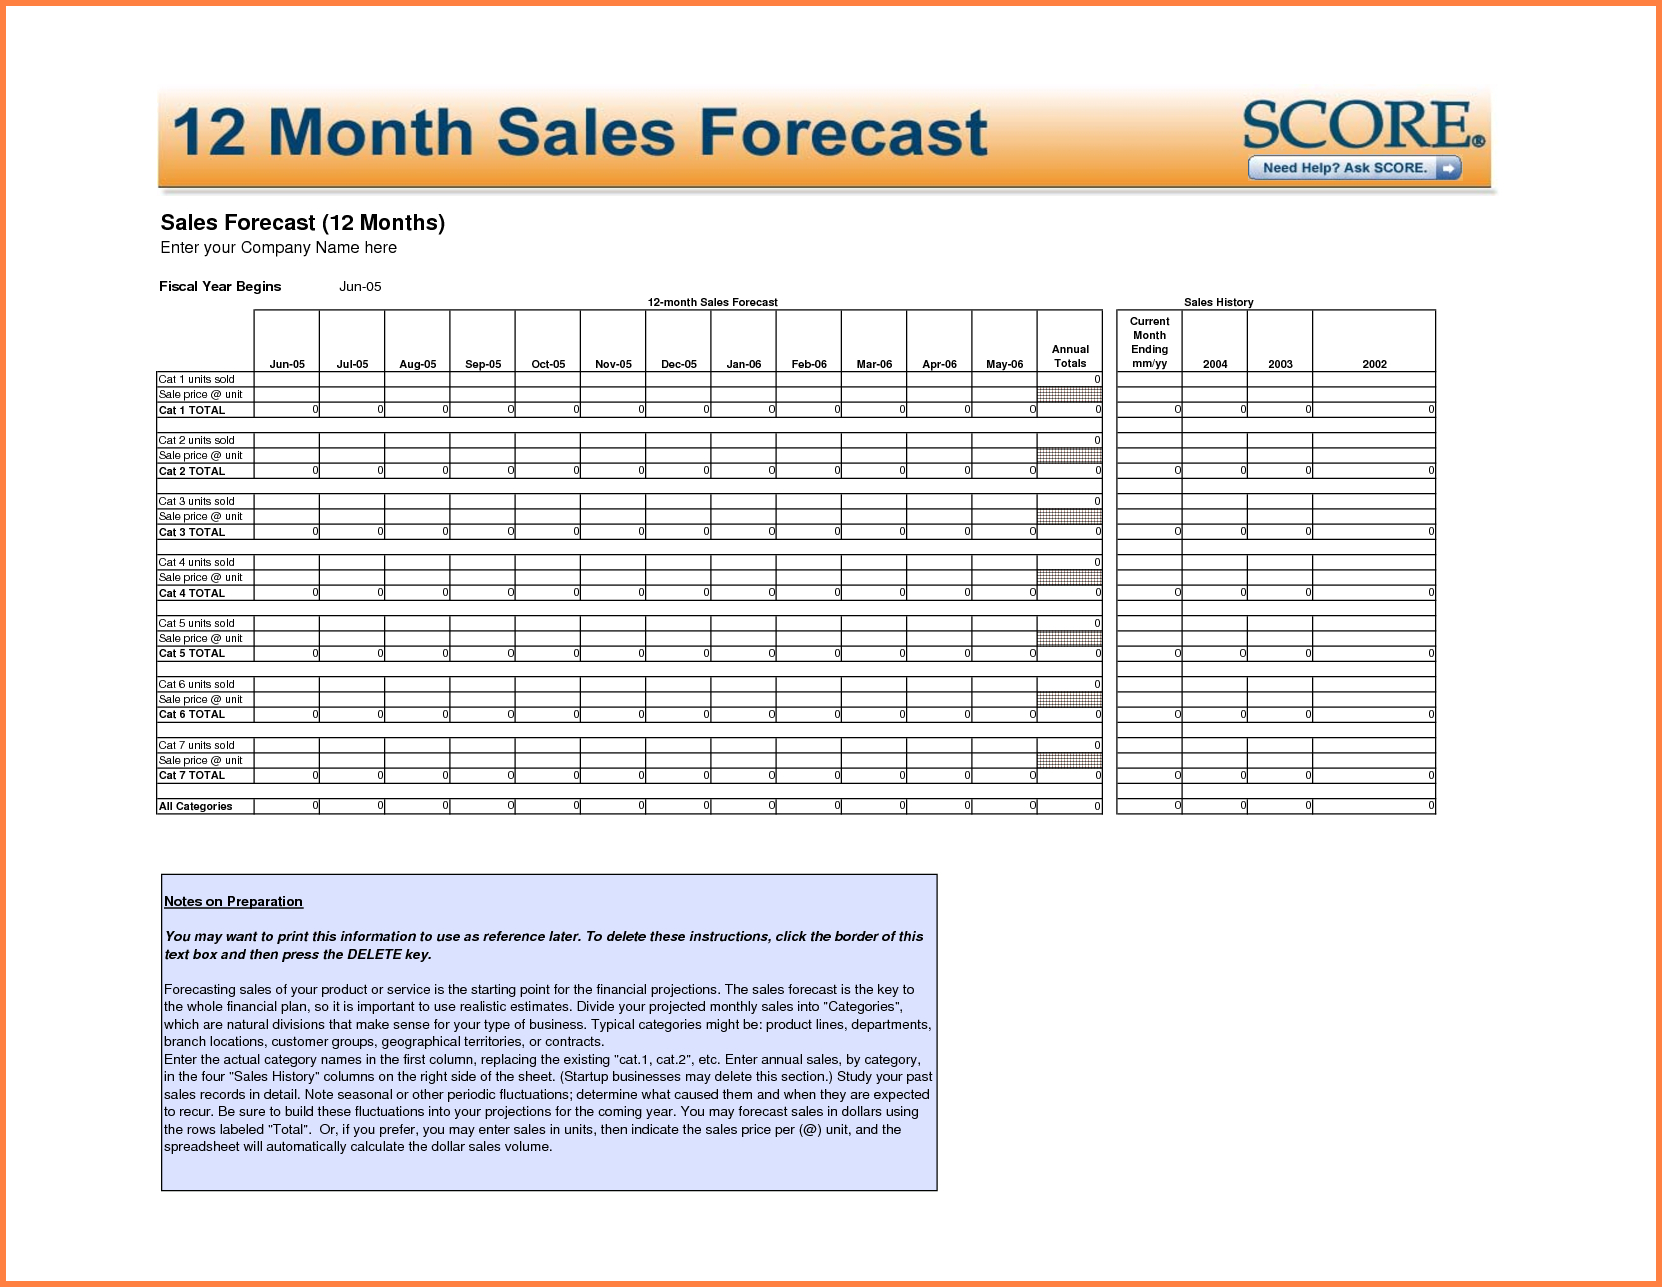 Sample Sales Forecast Spreadsheet Intended For Sales Forecast Template For Startup Business  Homebiz4U2Profit